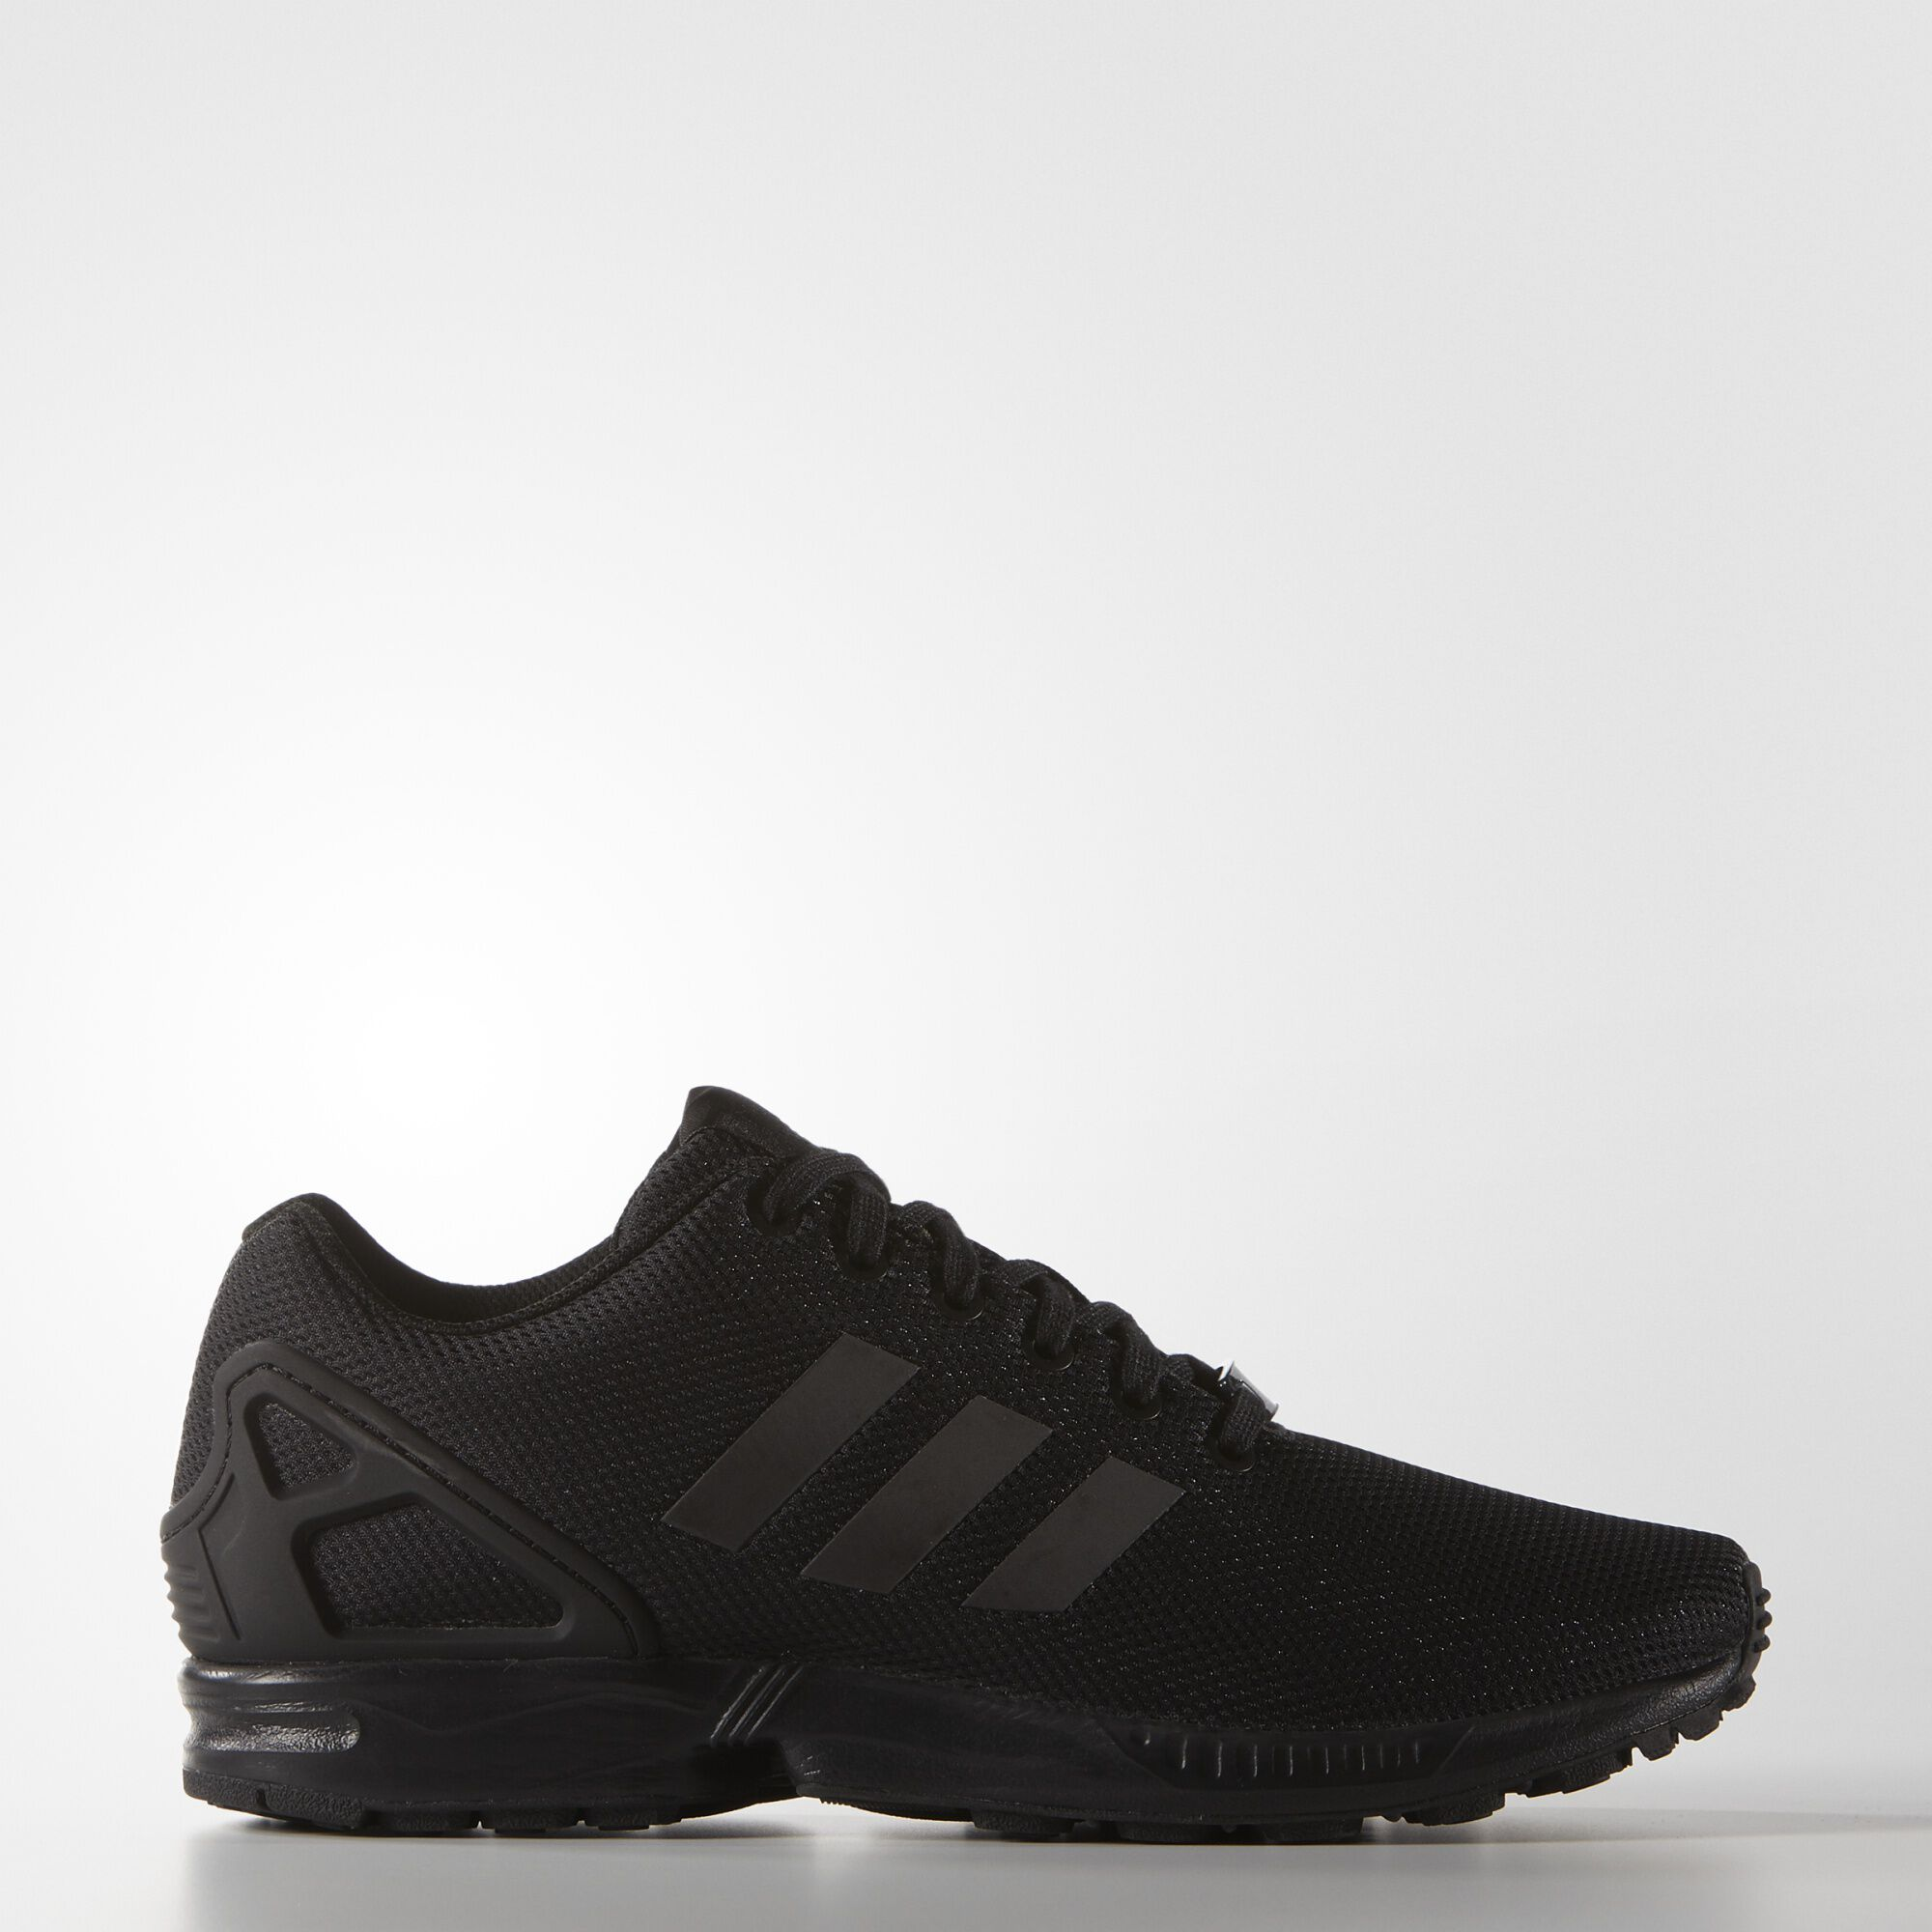 Adidas Zx Flux Black Gold Womens